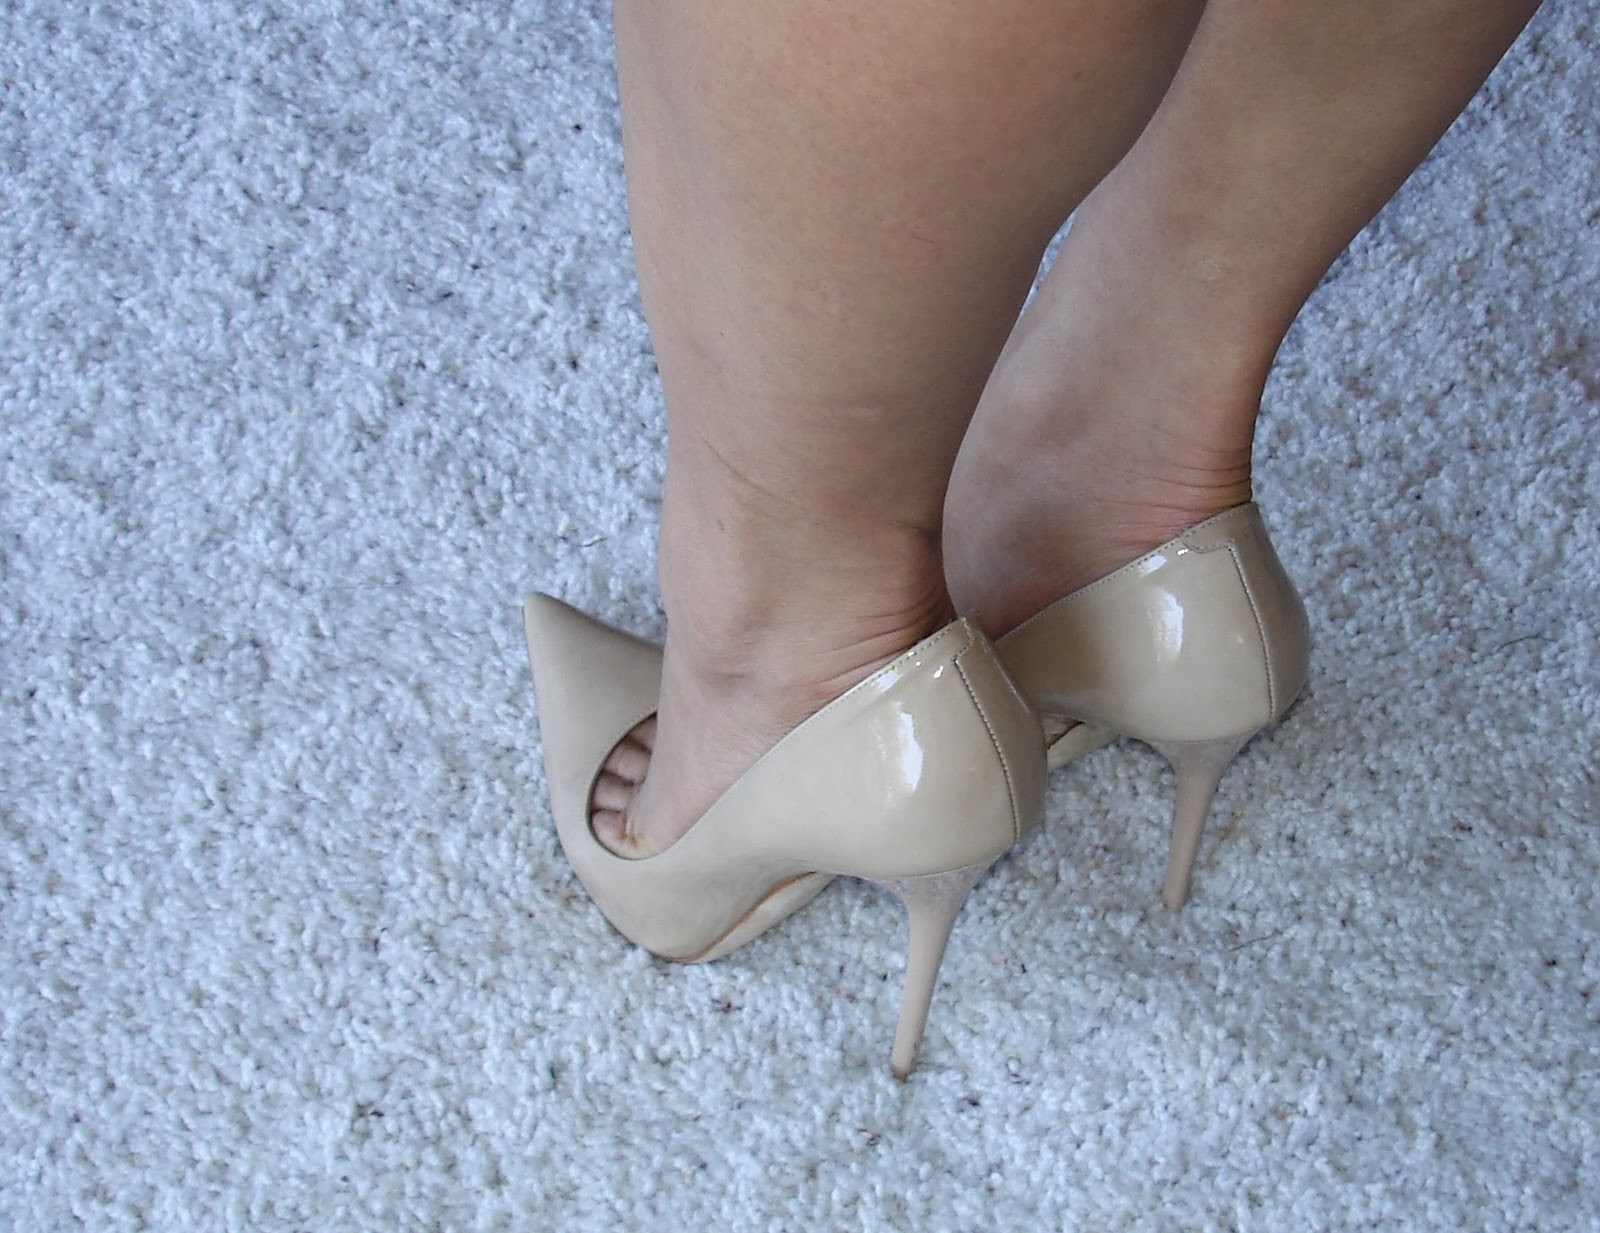 high heels toe cleavage - 28 images - the toe cleavage ...